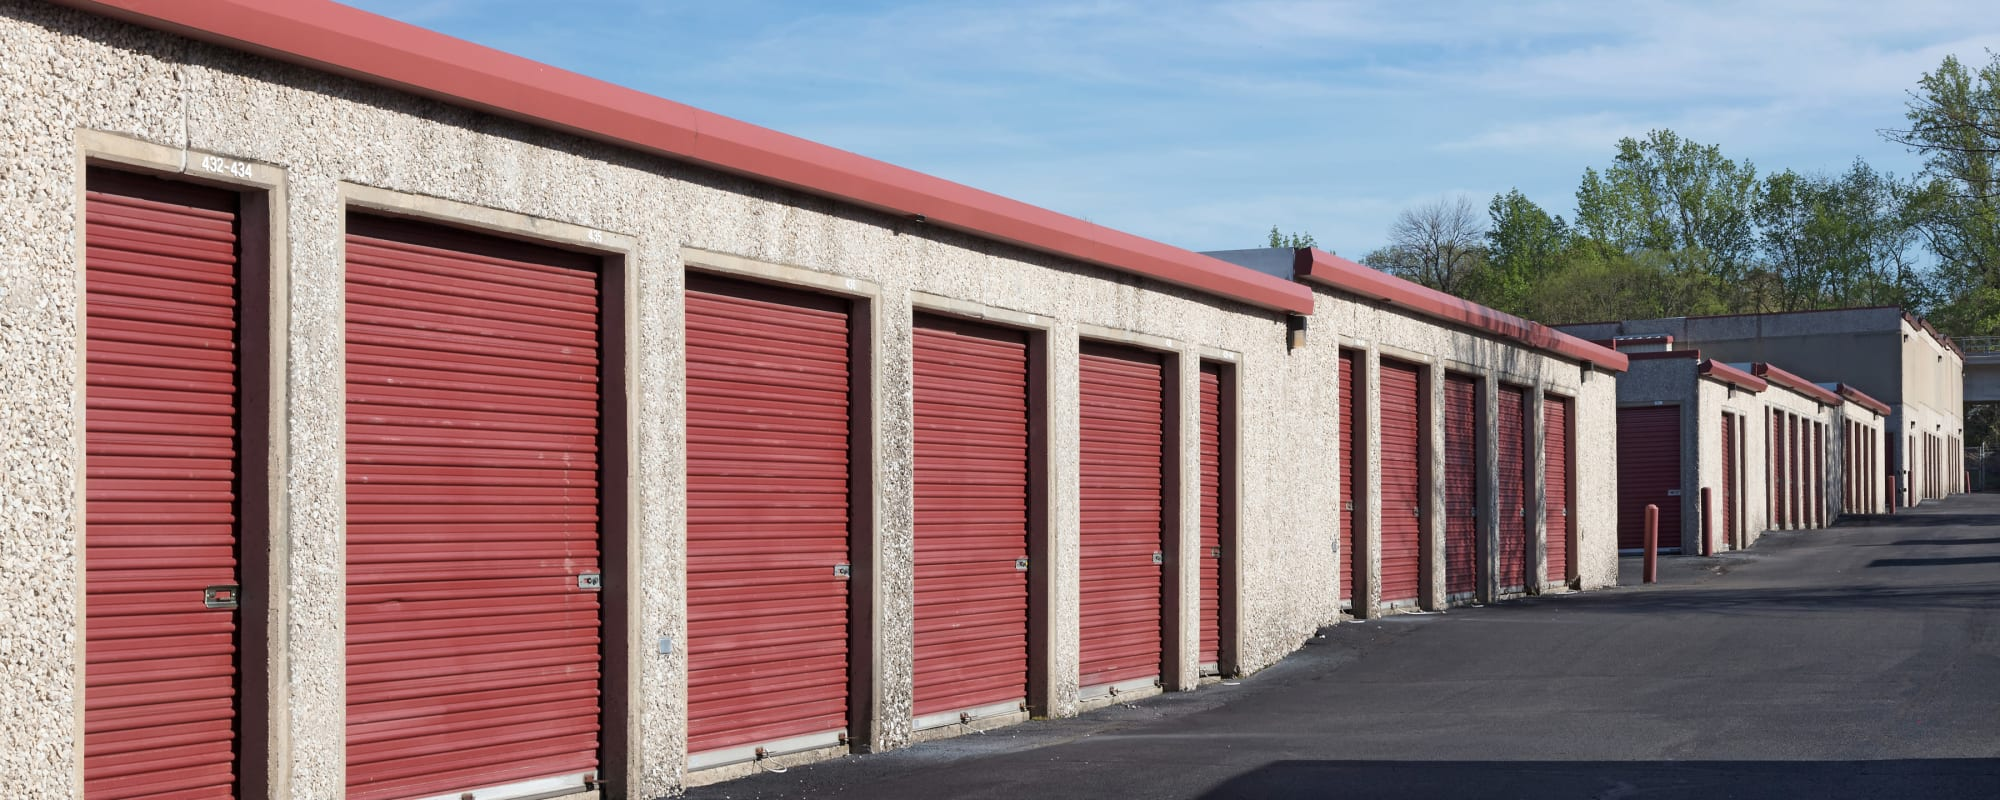 Exterior units at Self Storage Plus in Alexandria, VA